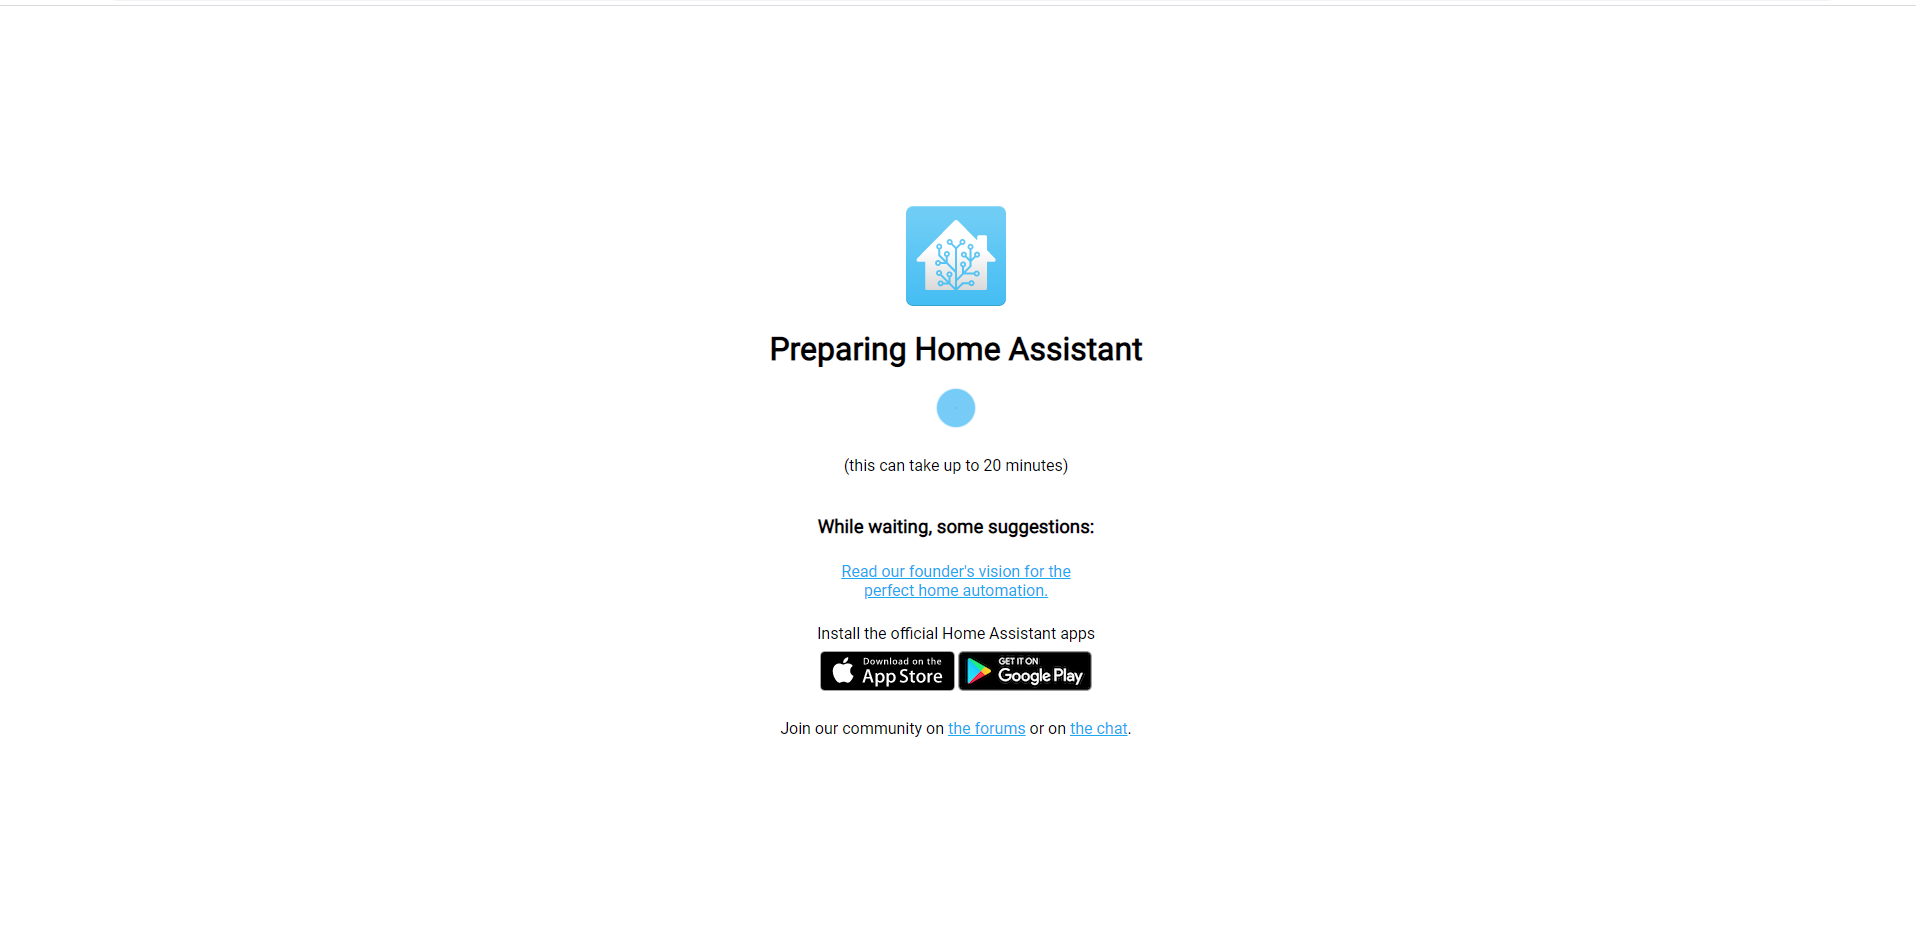 prepare home assistant